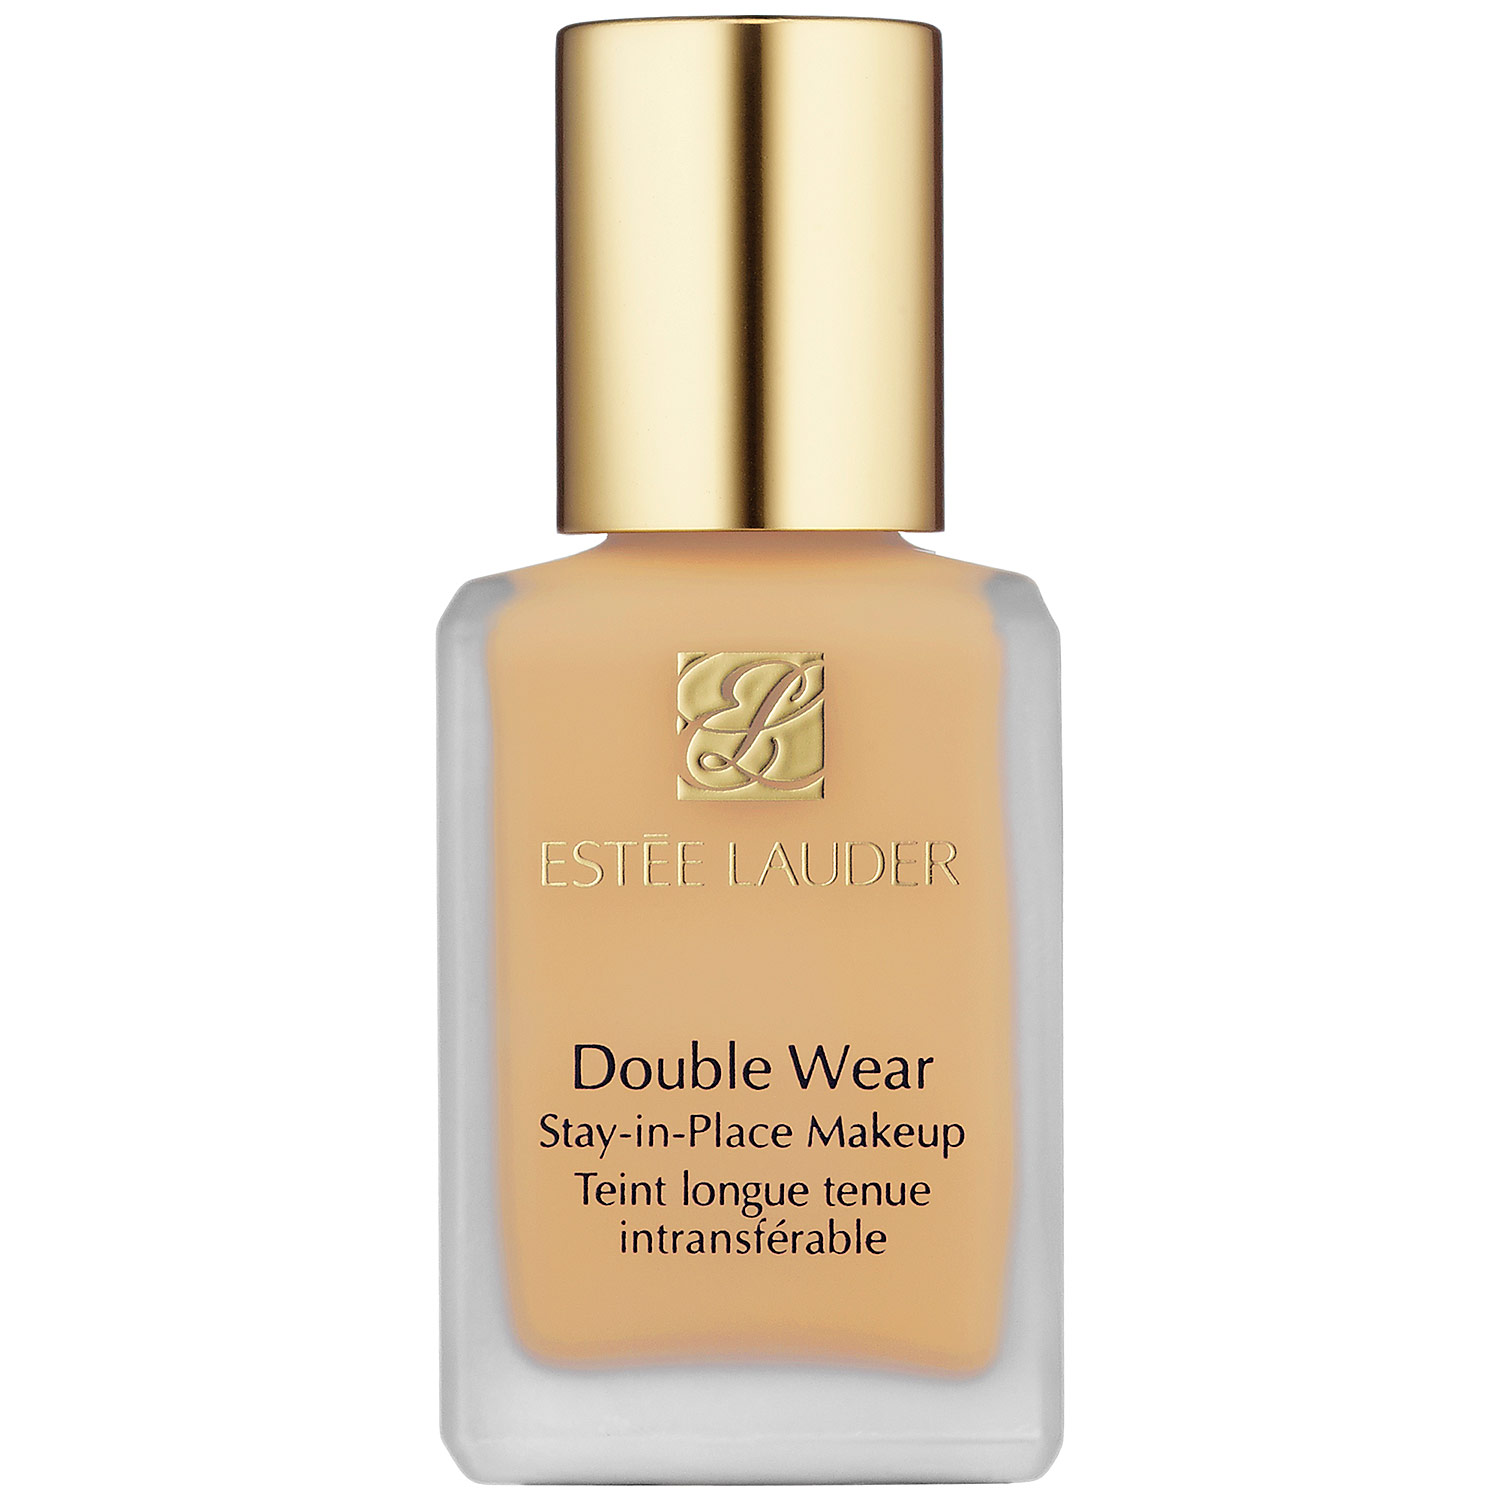 ESTEE LAUDER DOUBLE WEAR FLUIDO36 1W2 SAND 30 ML